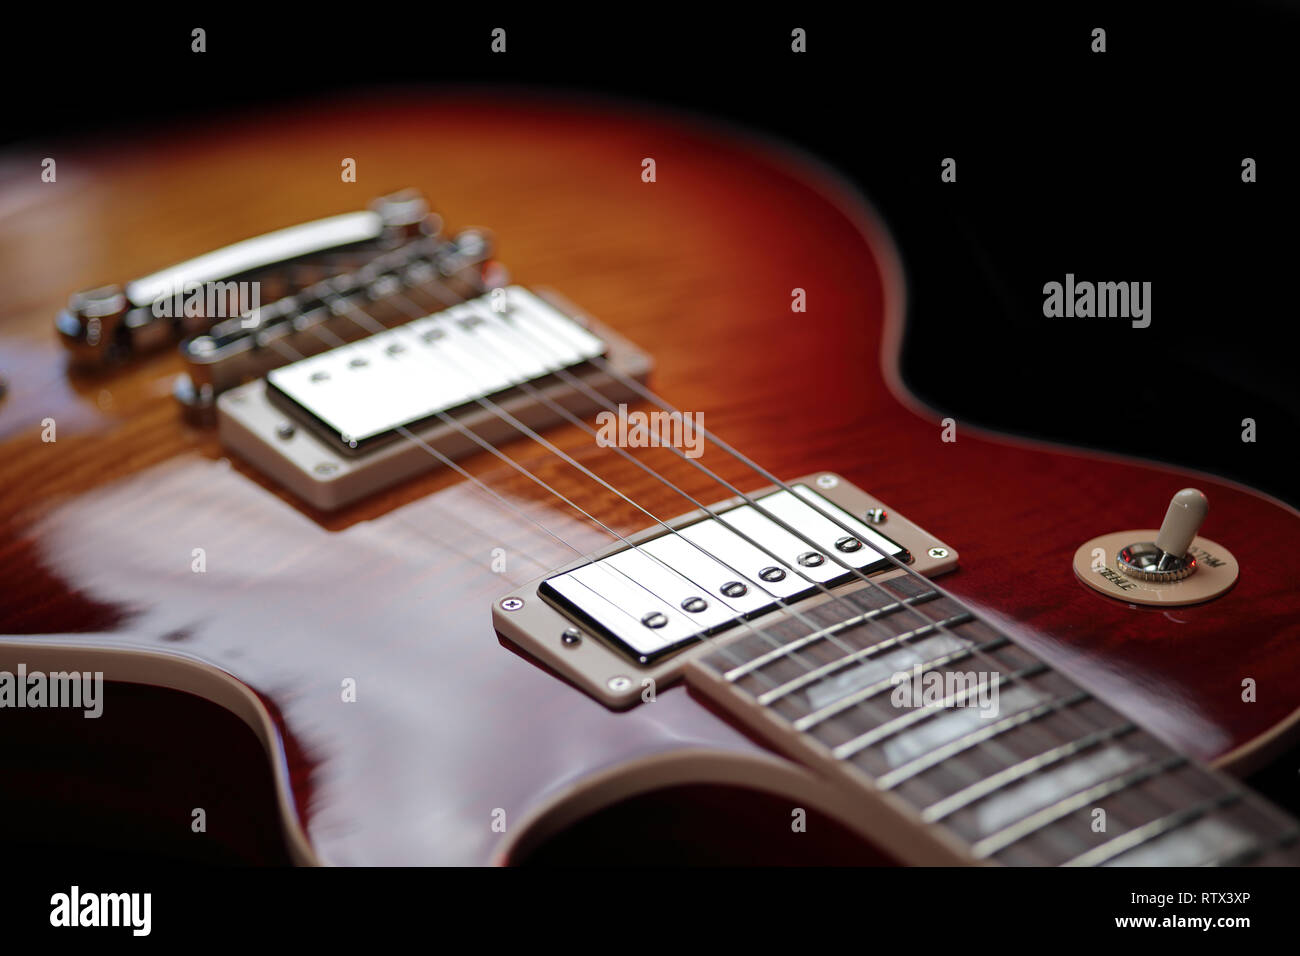 Gibson Les Paul Stock Photos & Gibson Les Paul Stock Images